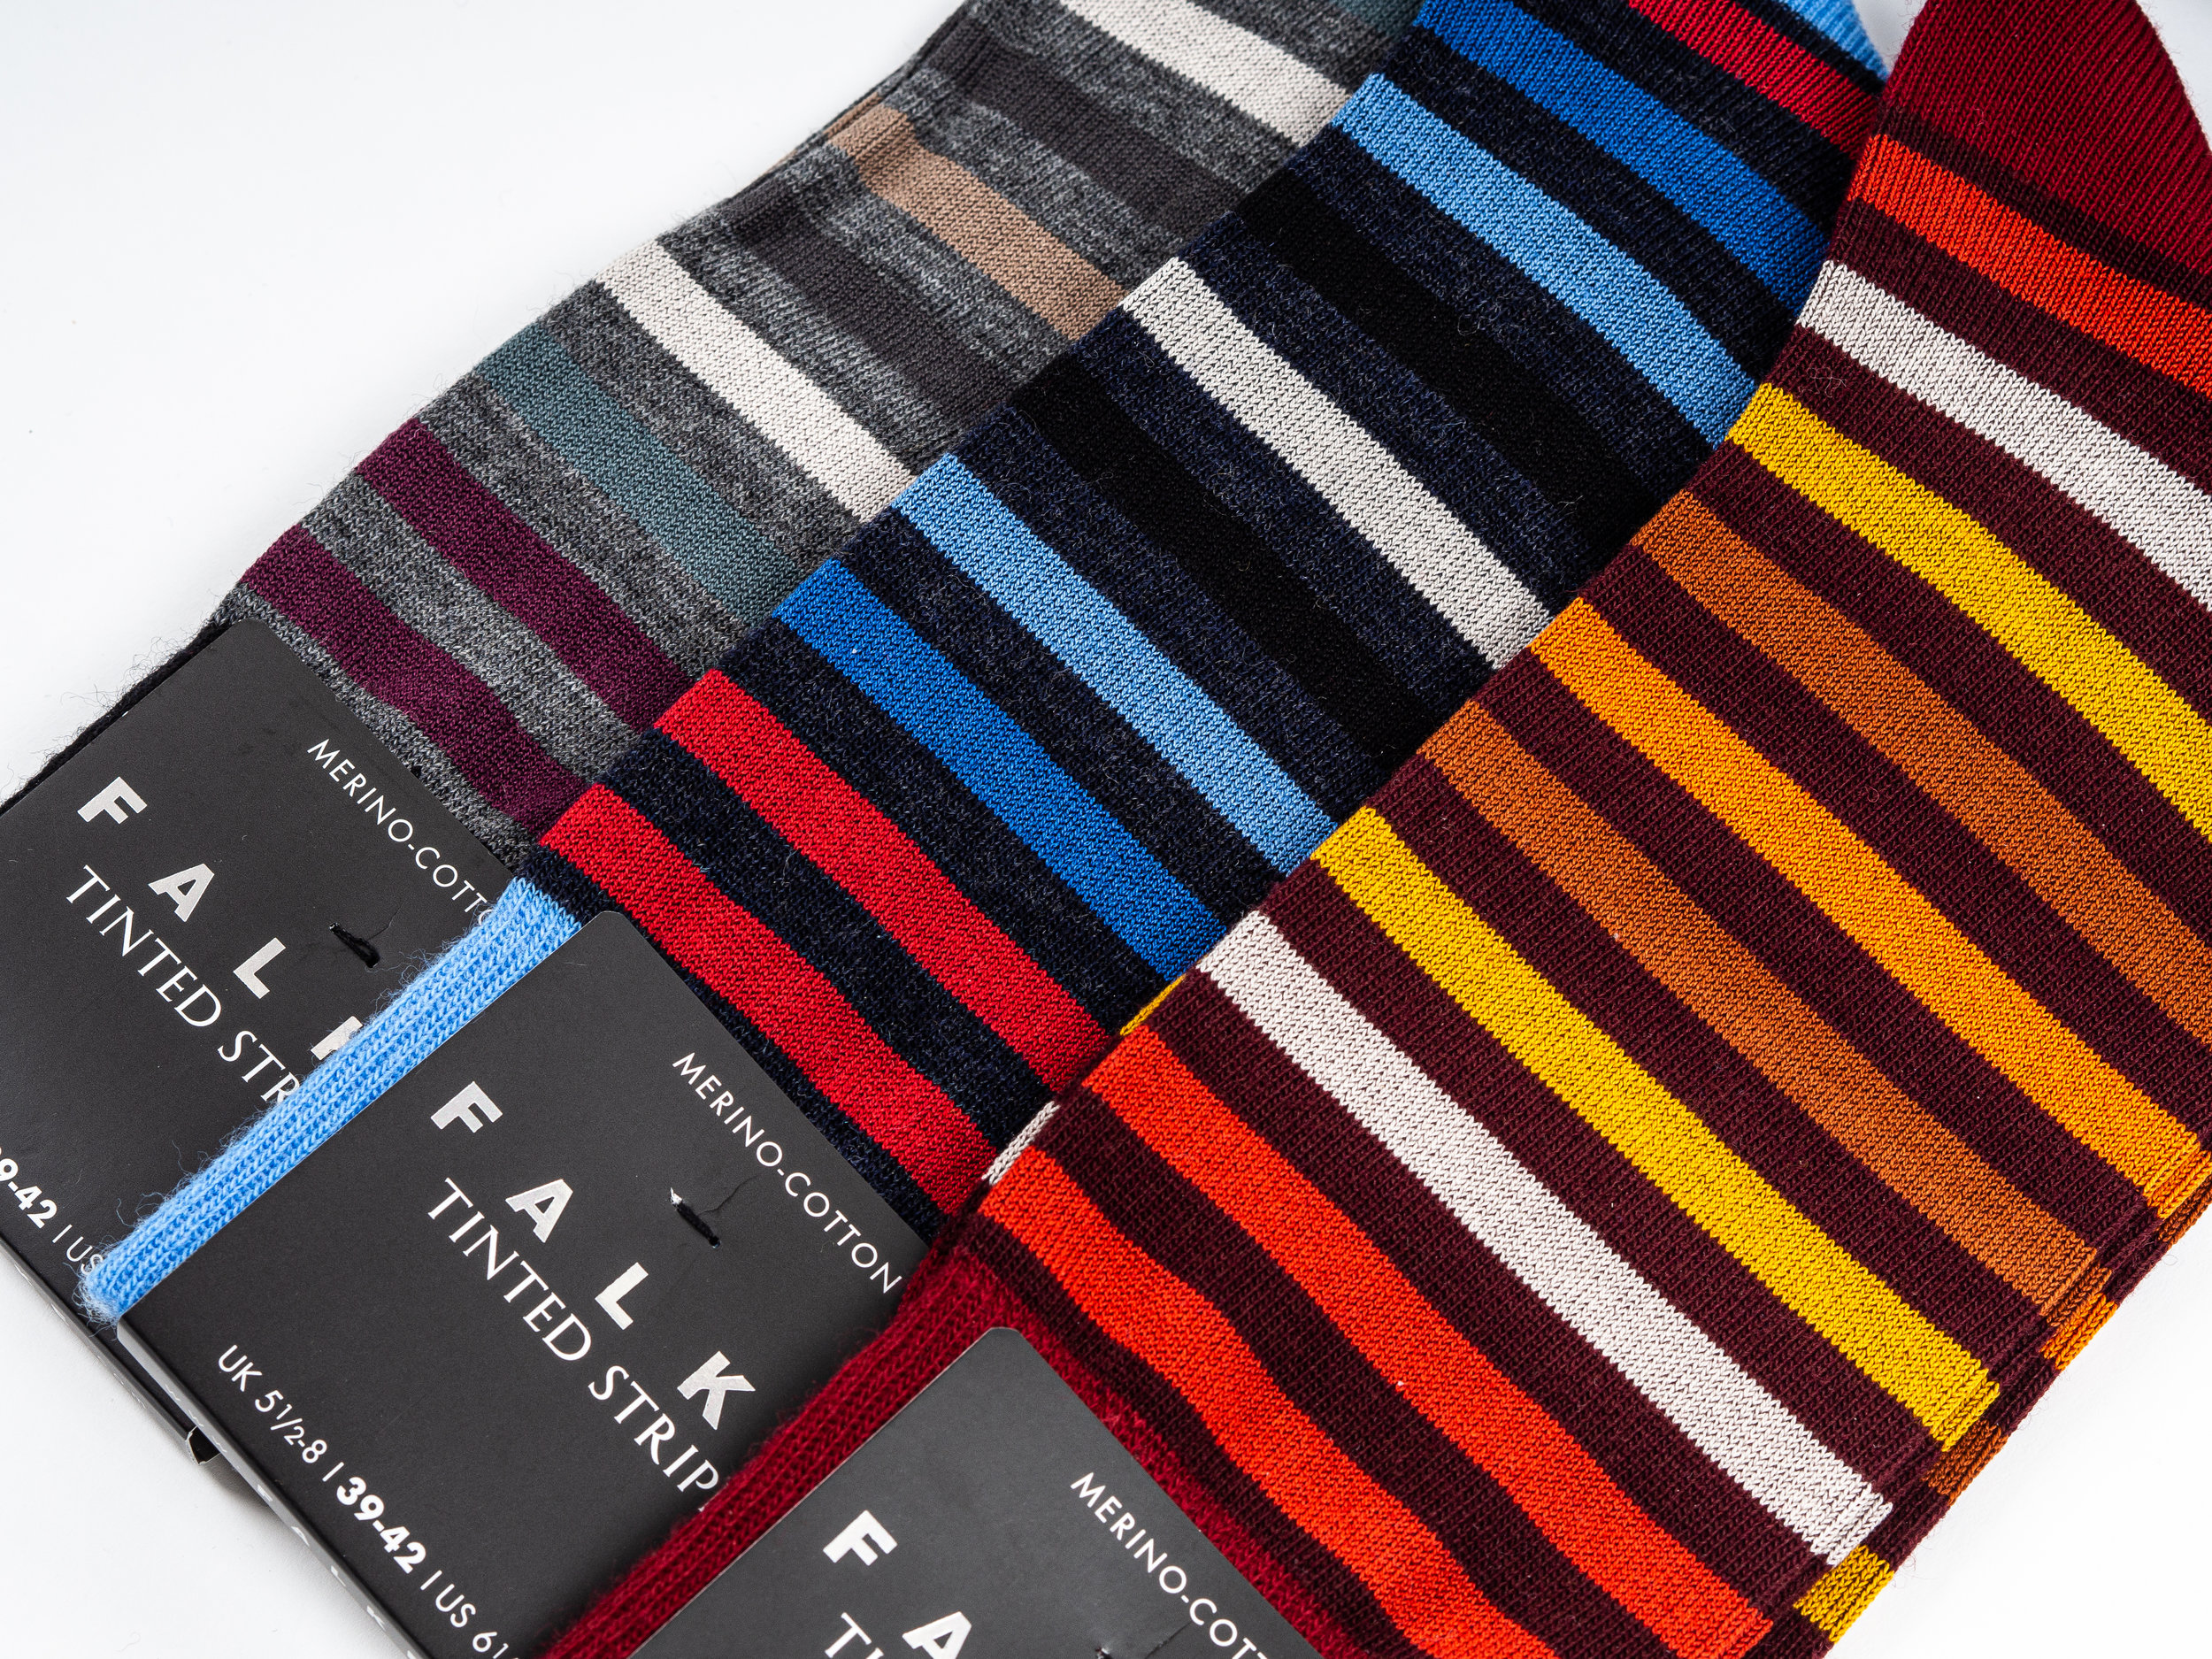 Falke Tinted Stripe Socks - These lightweight winter socks are made with virgin wool, and cotton. The wool yarn is faced outwards, providing warmth, moisture wicking, and temperature regulation, while the cotton yarn is faced inward, providing comfort on skin, especially for those who are sensitive to wool. They are anatomically fitted, with reinforced stress zones. Falke's Tinted Stripe Socks are made in the EU.